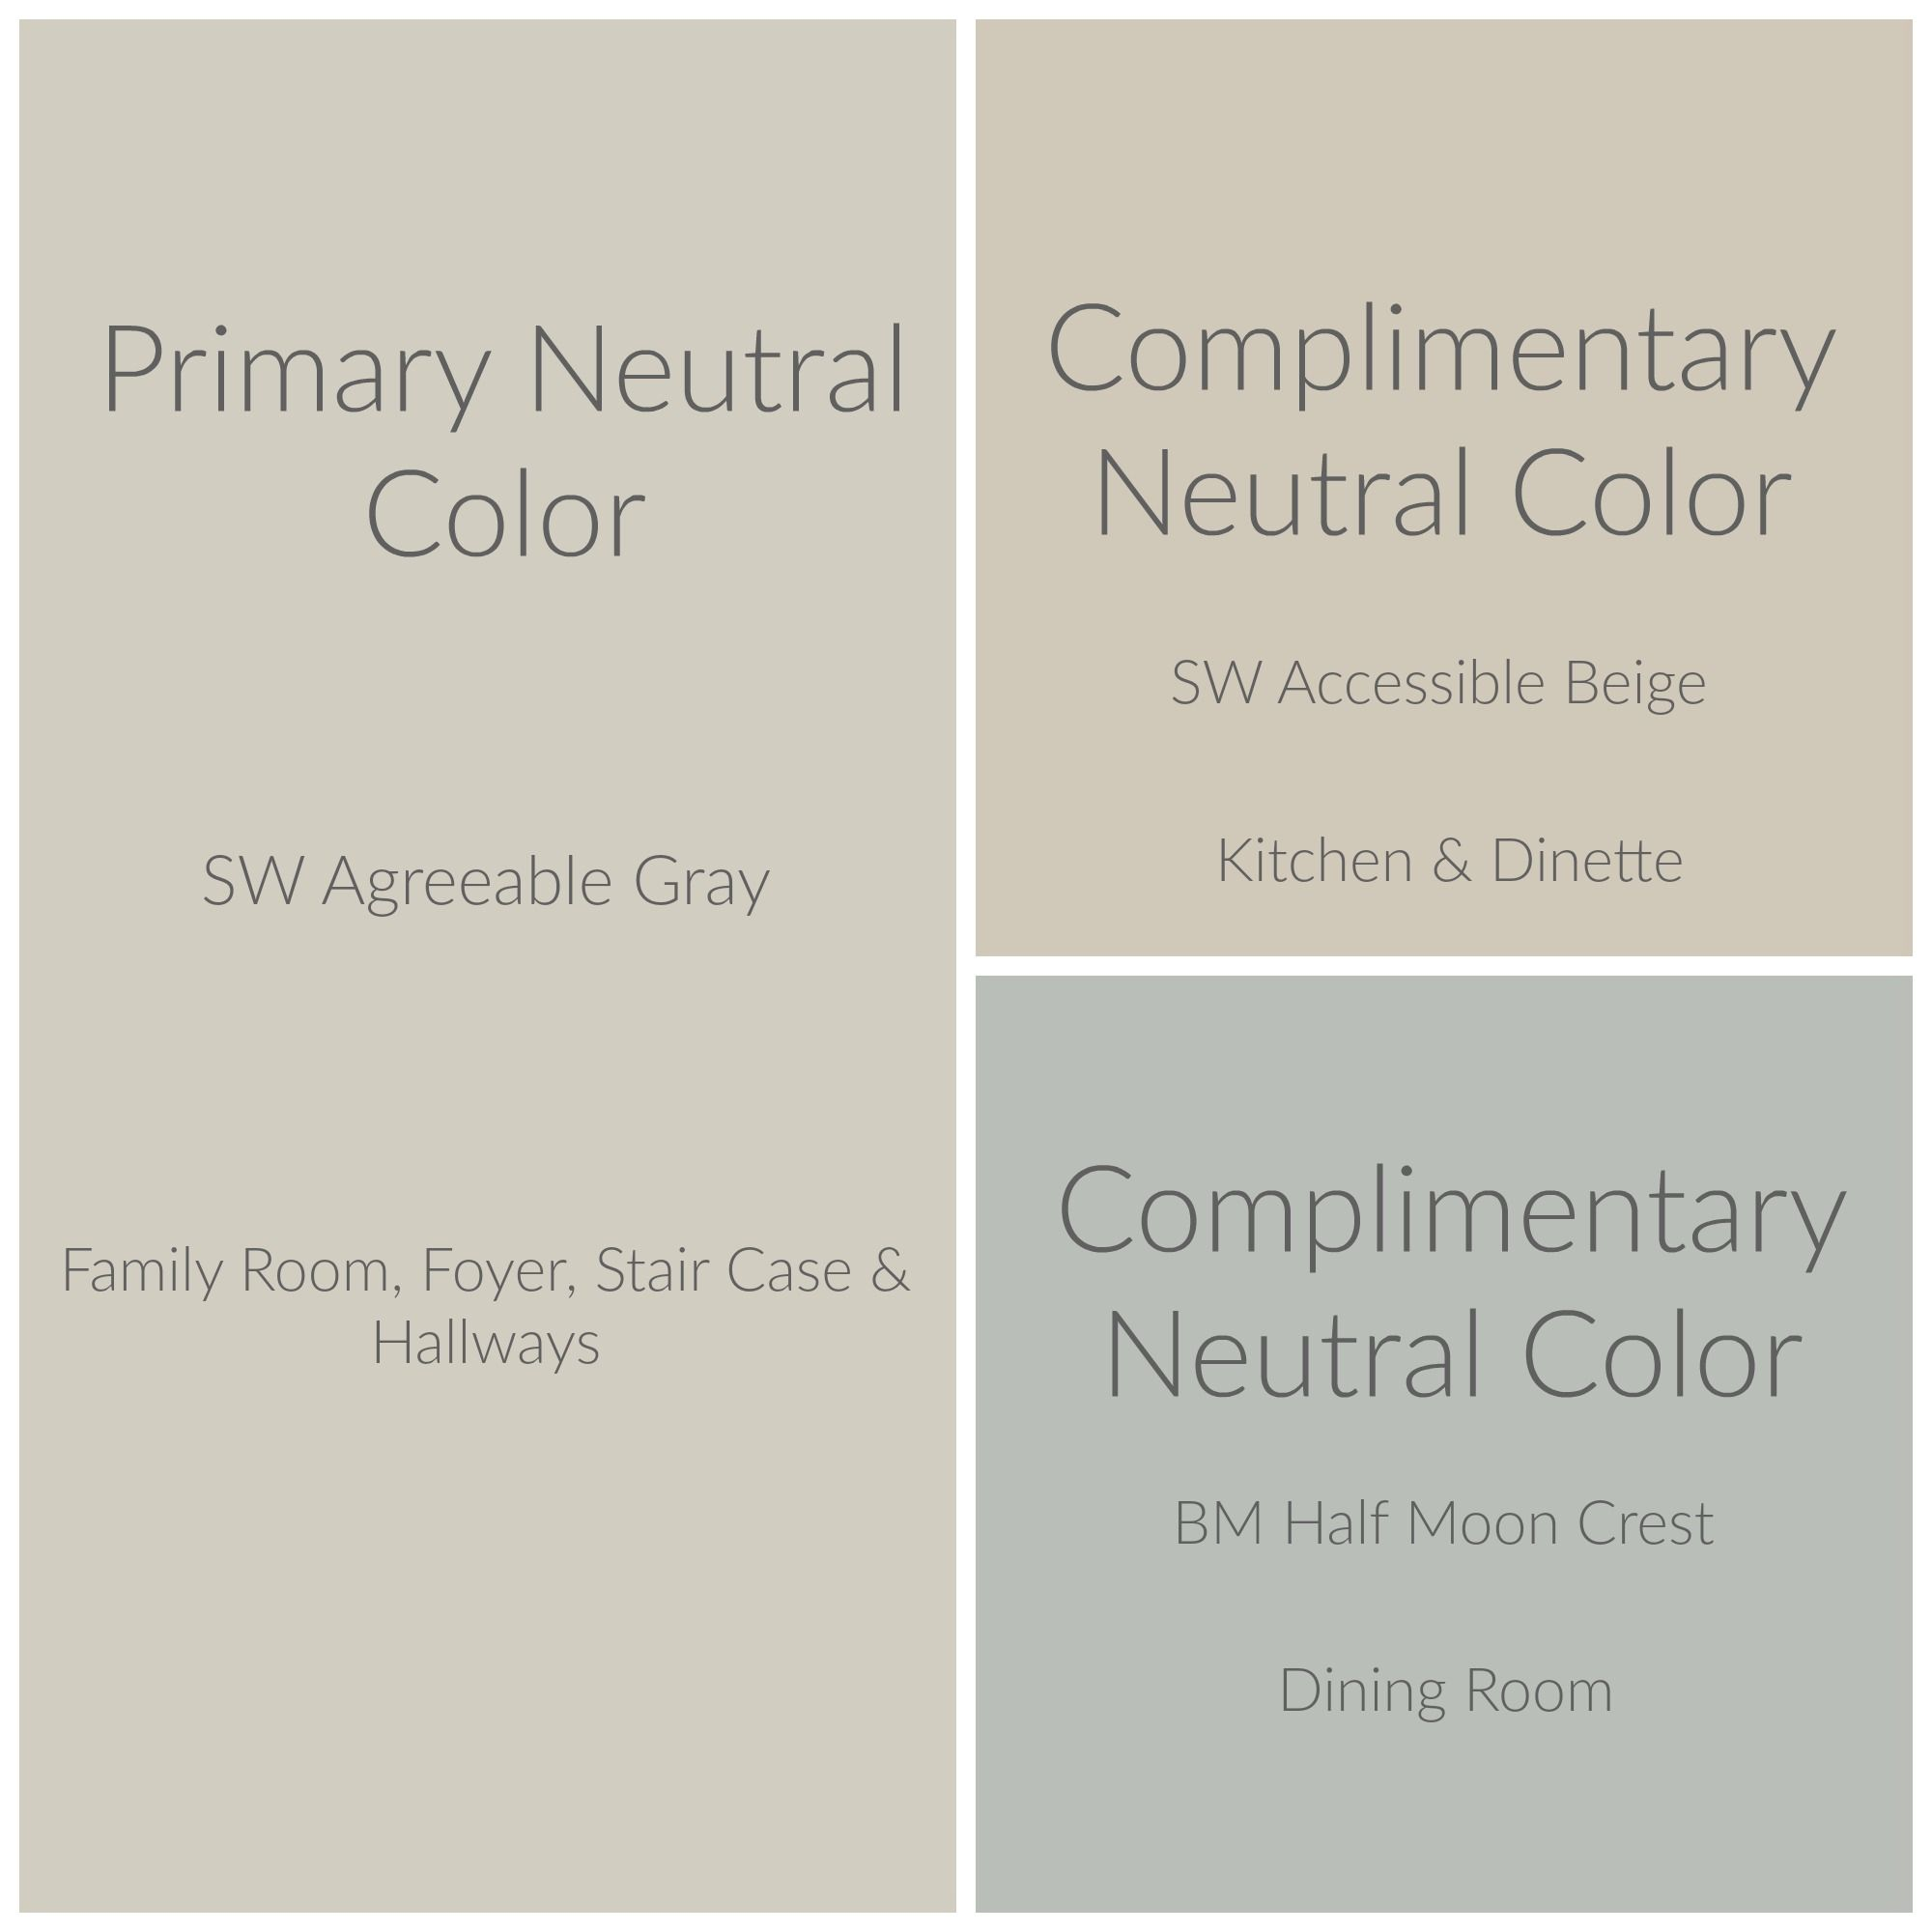 Great Tips To Create A Whole House Color Palette. Make A Plan You Love And Can